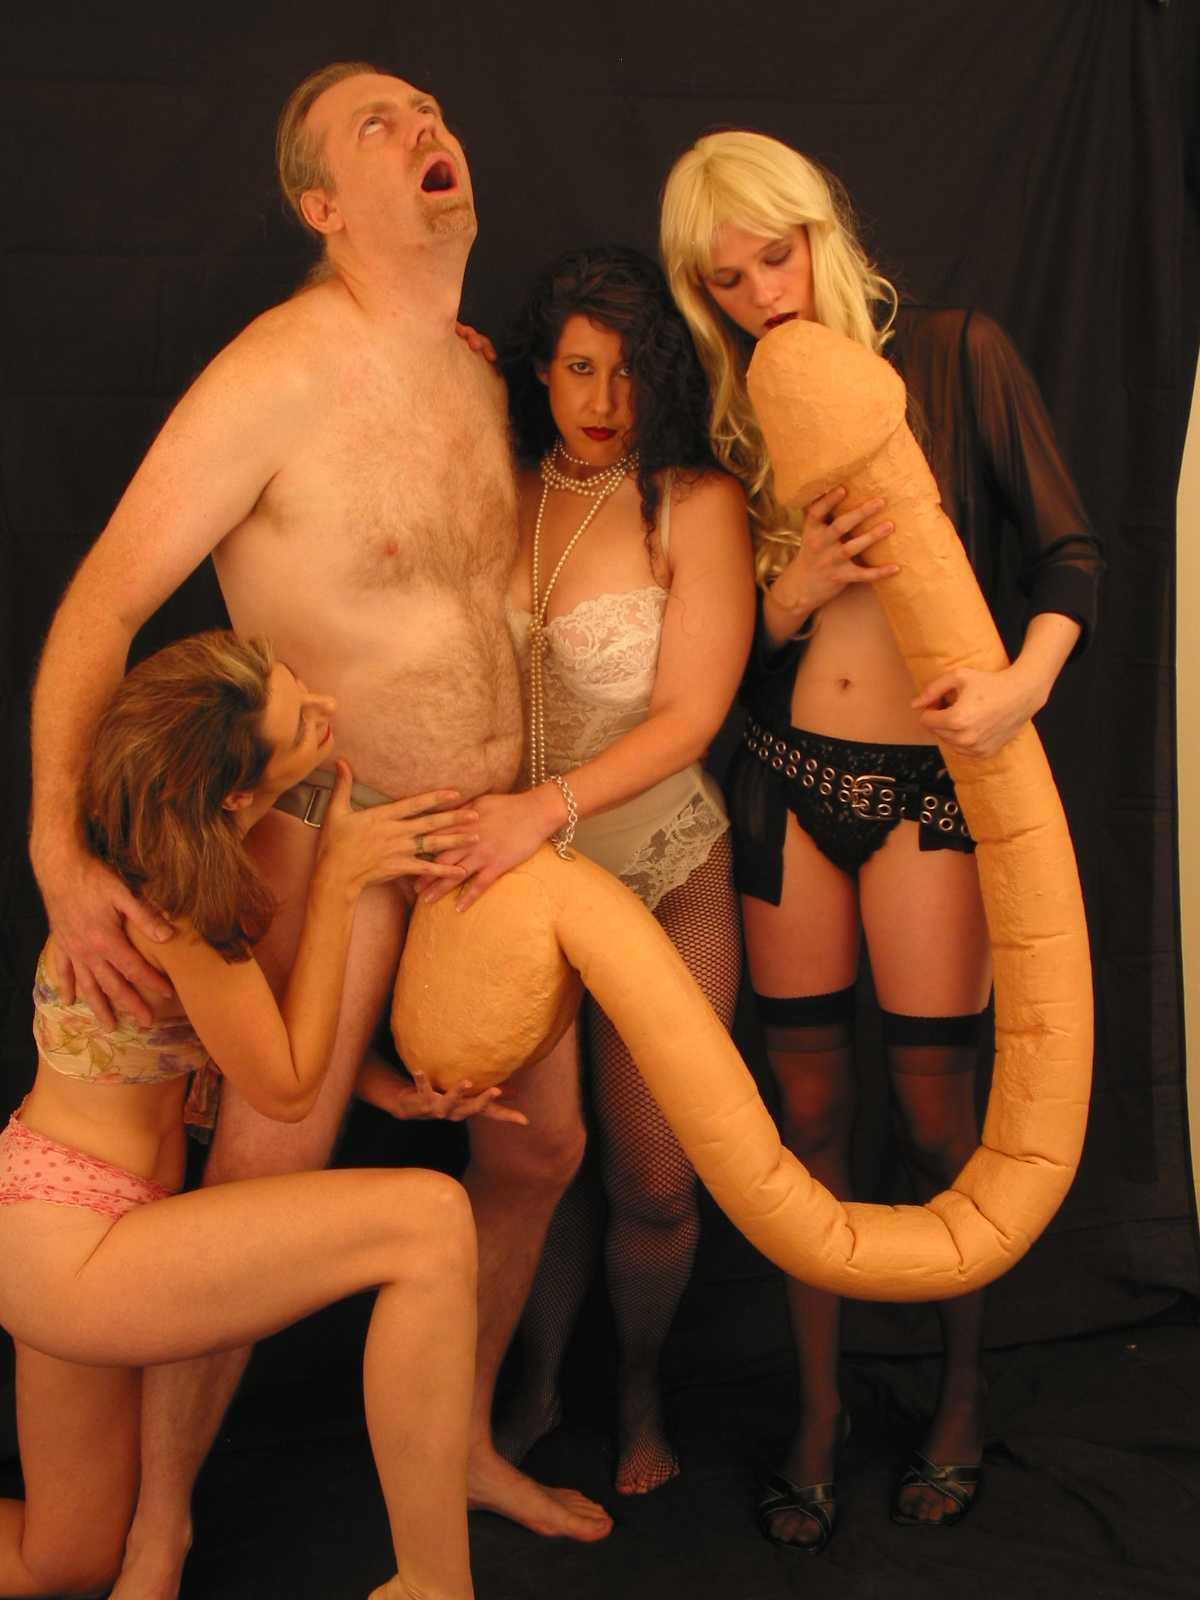 1445945195_john_with_women_being_licked